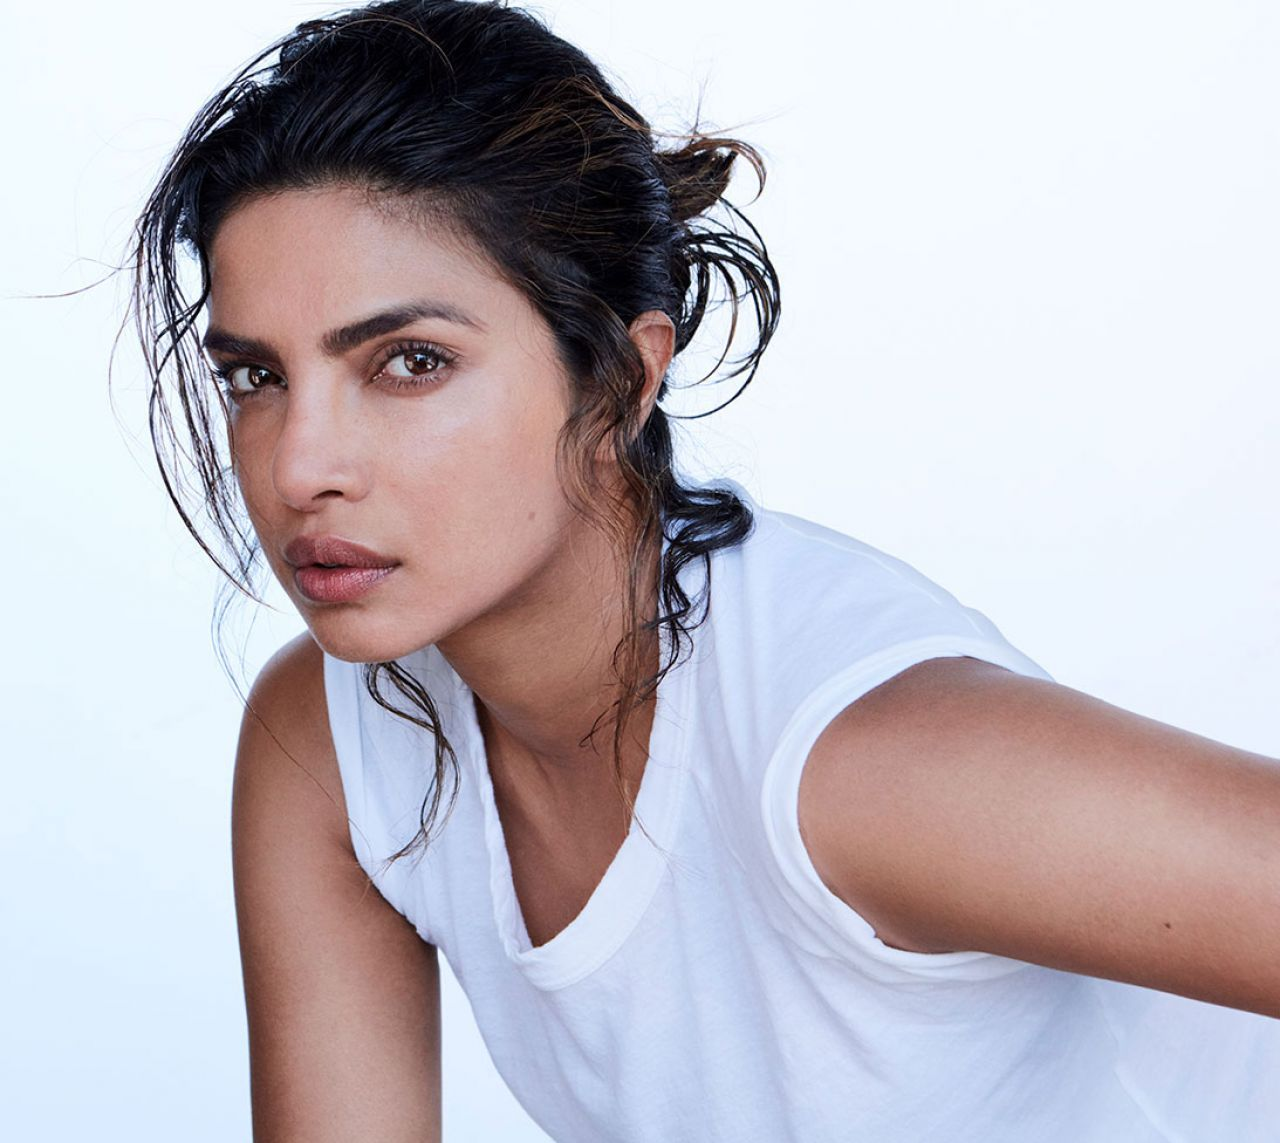 https://celebmafia.com/wp-content/uploads/2018/06/priyanka-chopra-allure-summer-2018-5.jpg